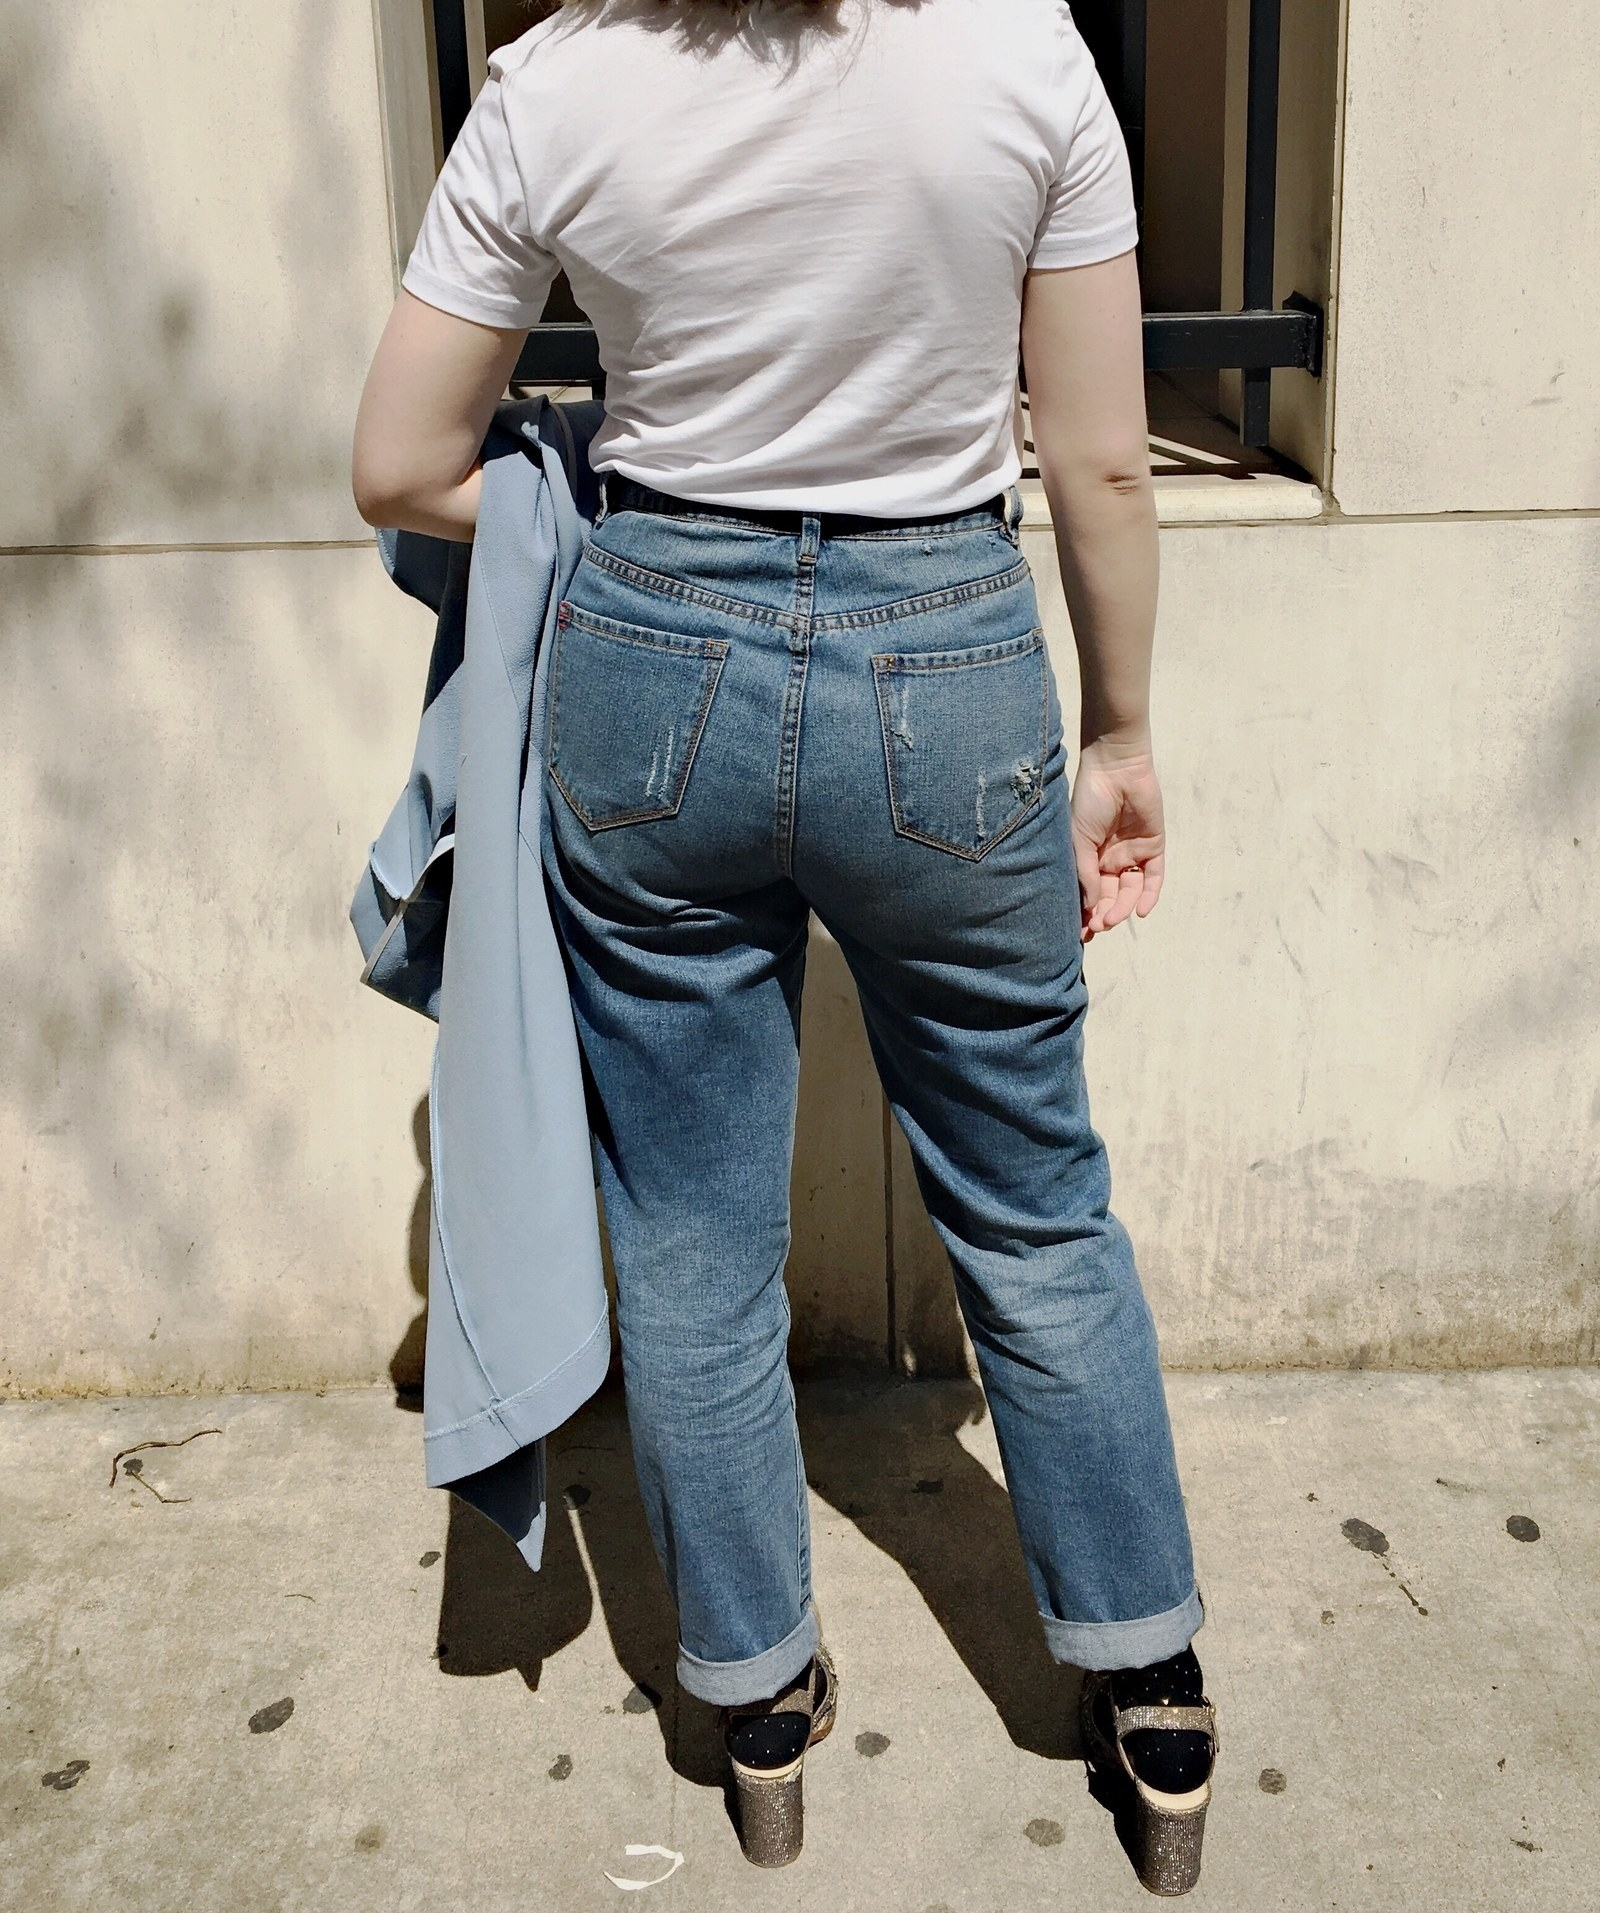 49c93113455 9. Some high-waisted mom jeans that are narrow at the waist and loose at  the hips and might just be a little cooler than the jeans your mom has in  her ...